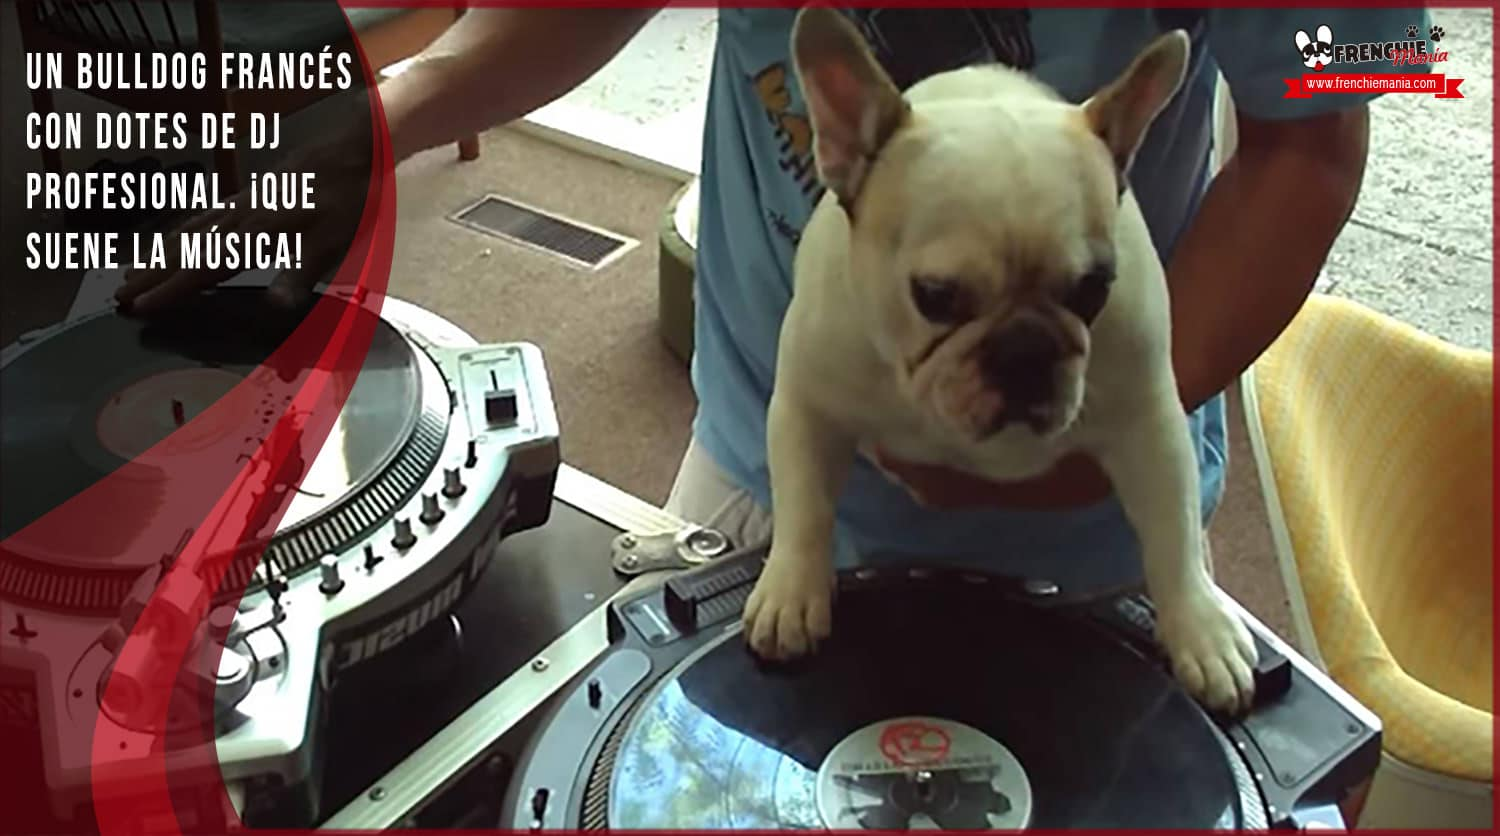 bulldog frances dj